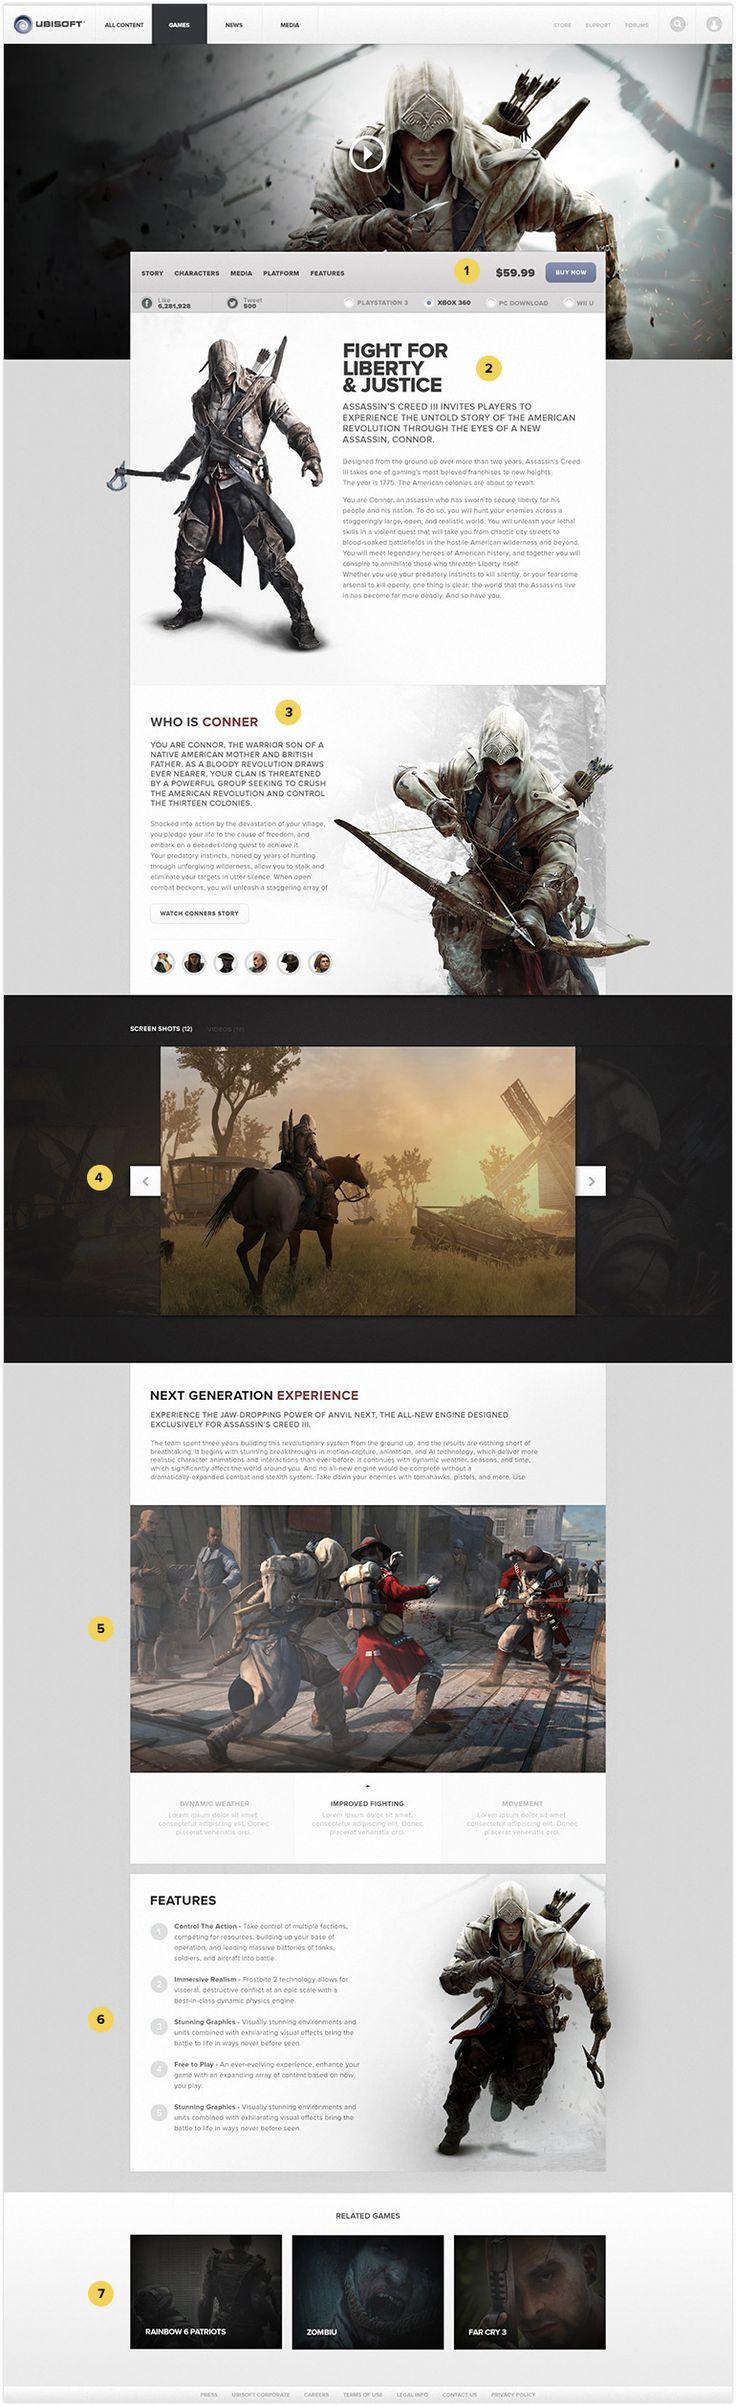 Ubisoft Branding | BASIC™ Agency | Branding, Design & Advertising